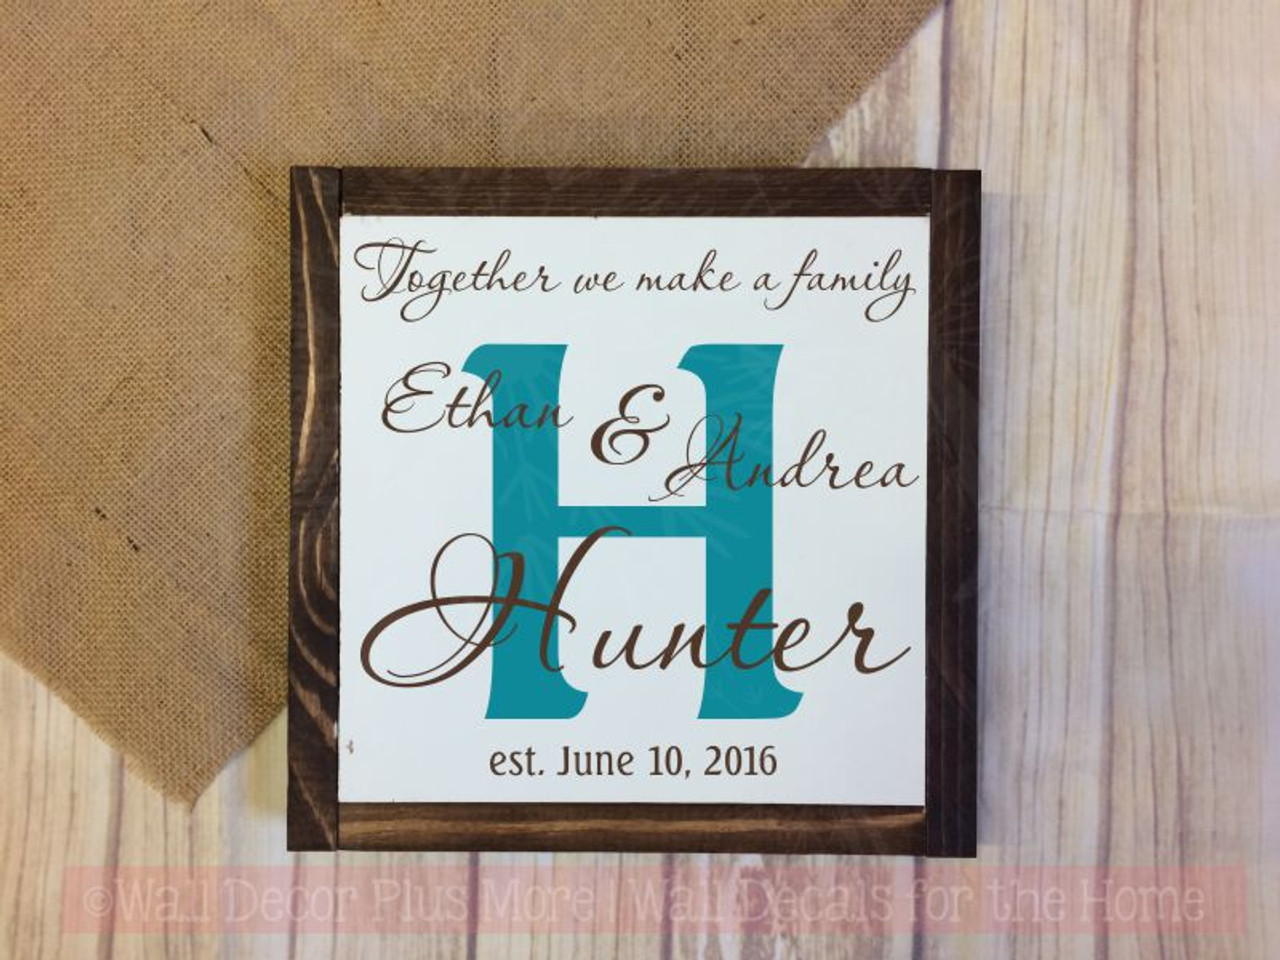 Wedding Couple Personalized Design With Background Letter Wall Vinyl Decal Names And Date